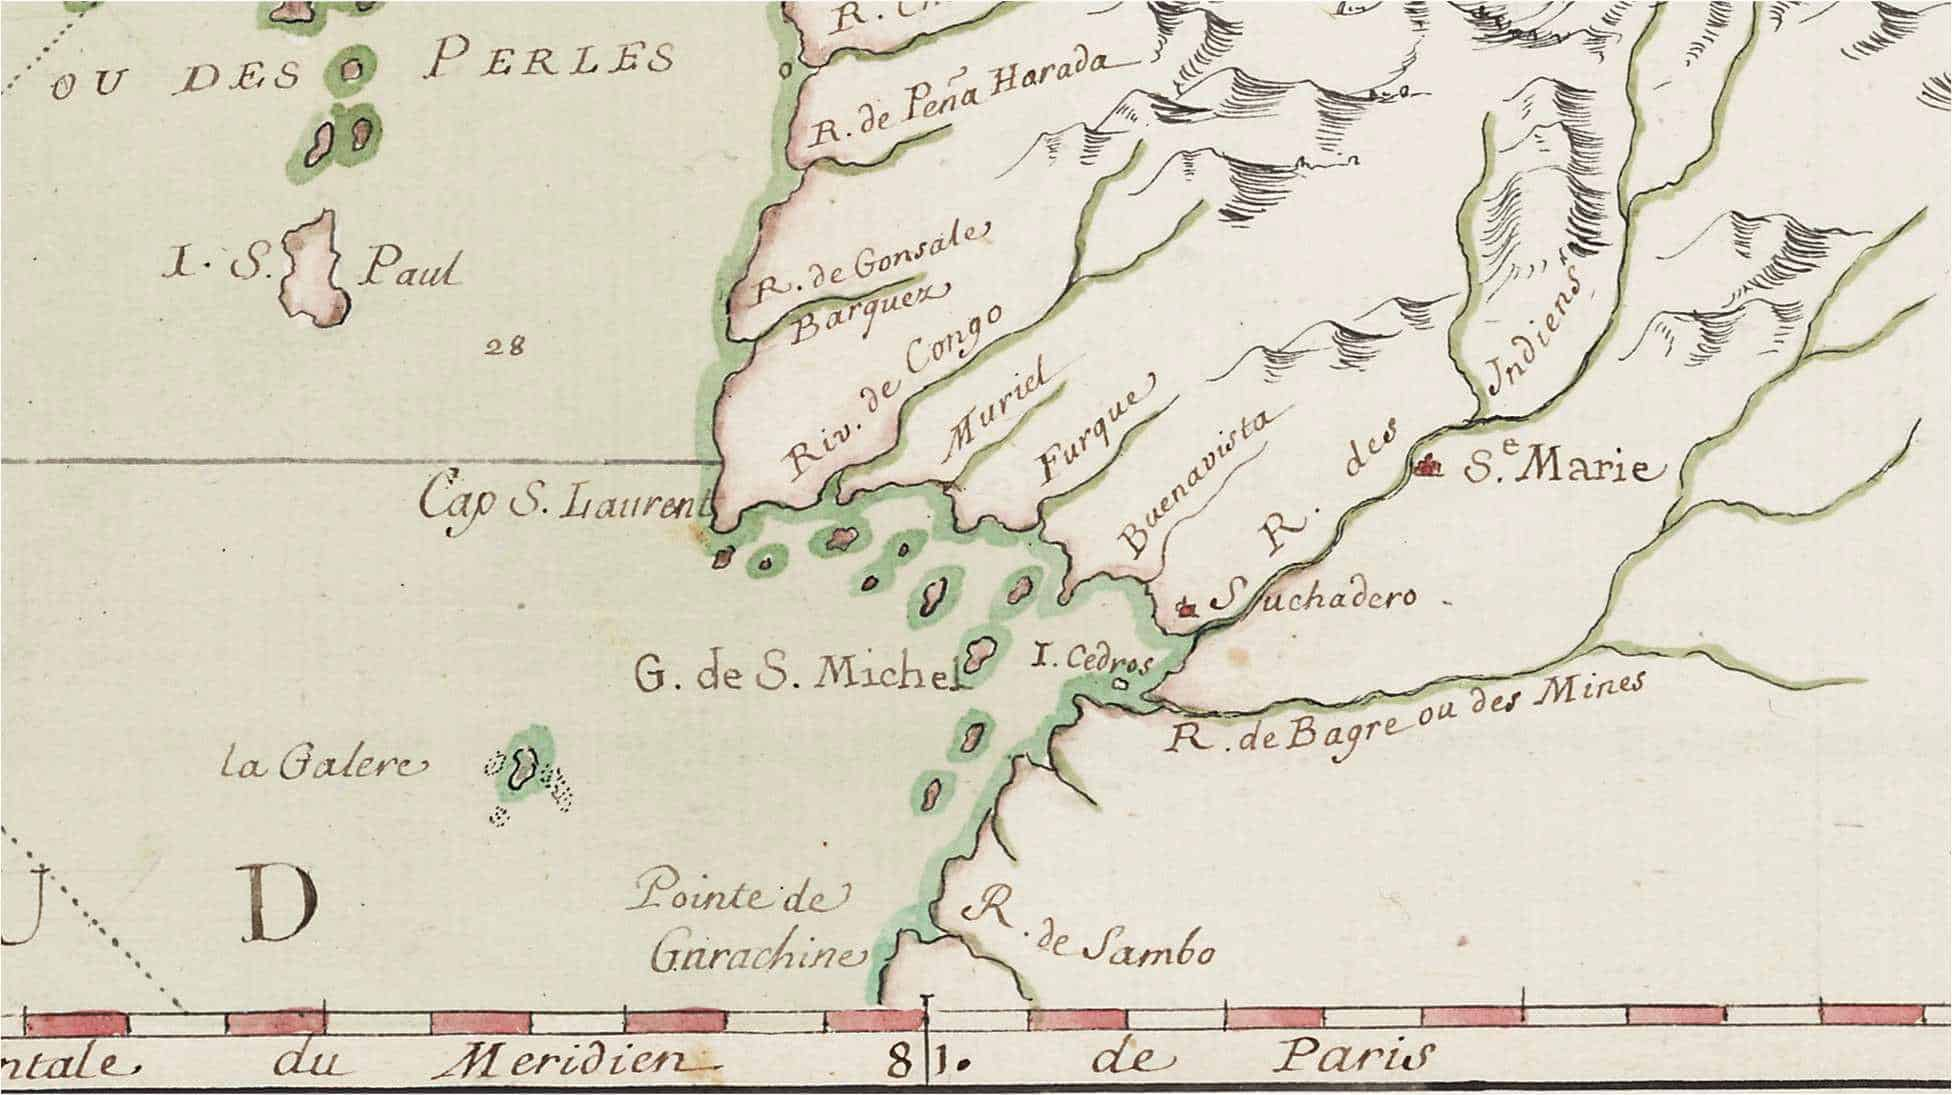 Detail of a French Map of the Isthmus of Darien showing Santa Maria.